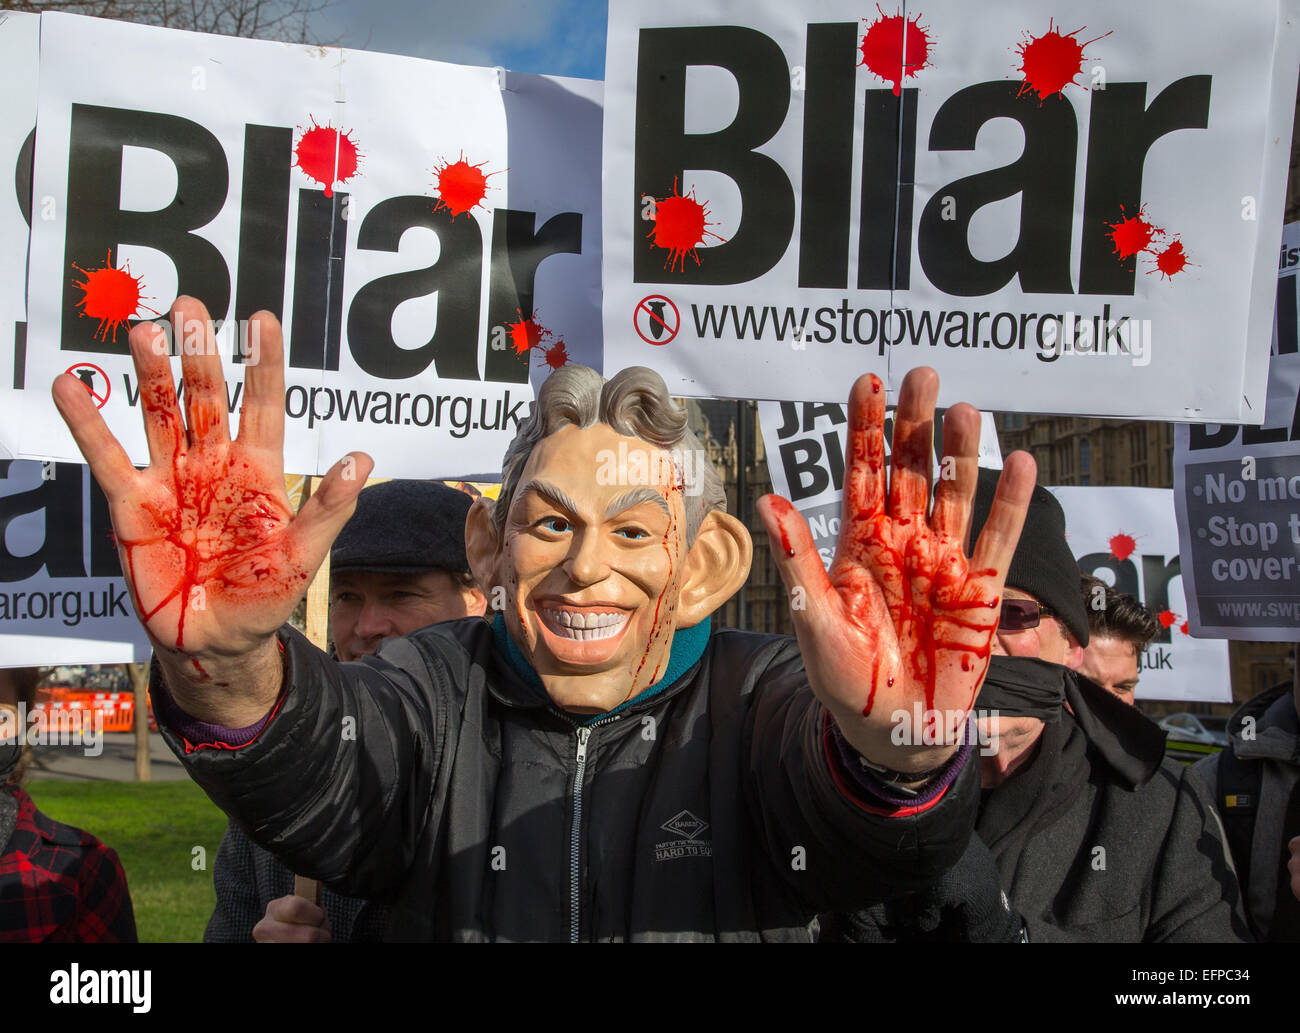 Tony Blair mask with blood on his hands at demonstration outside Parliament over the invasion of Iraq in 2003 - Stock Image